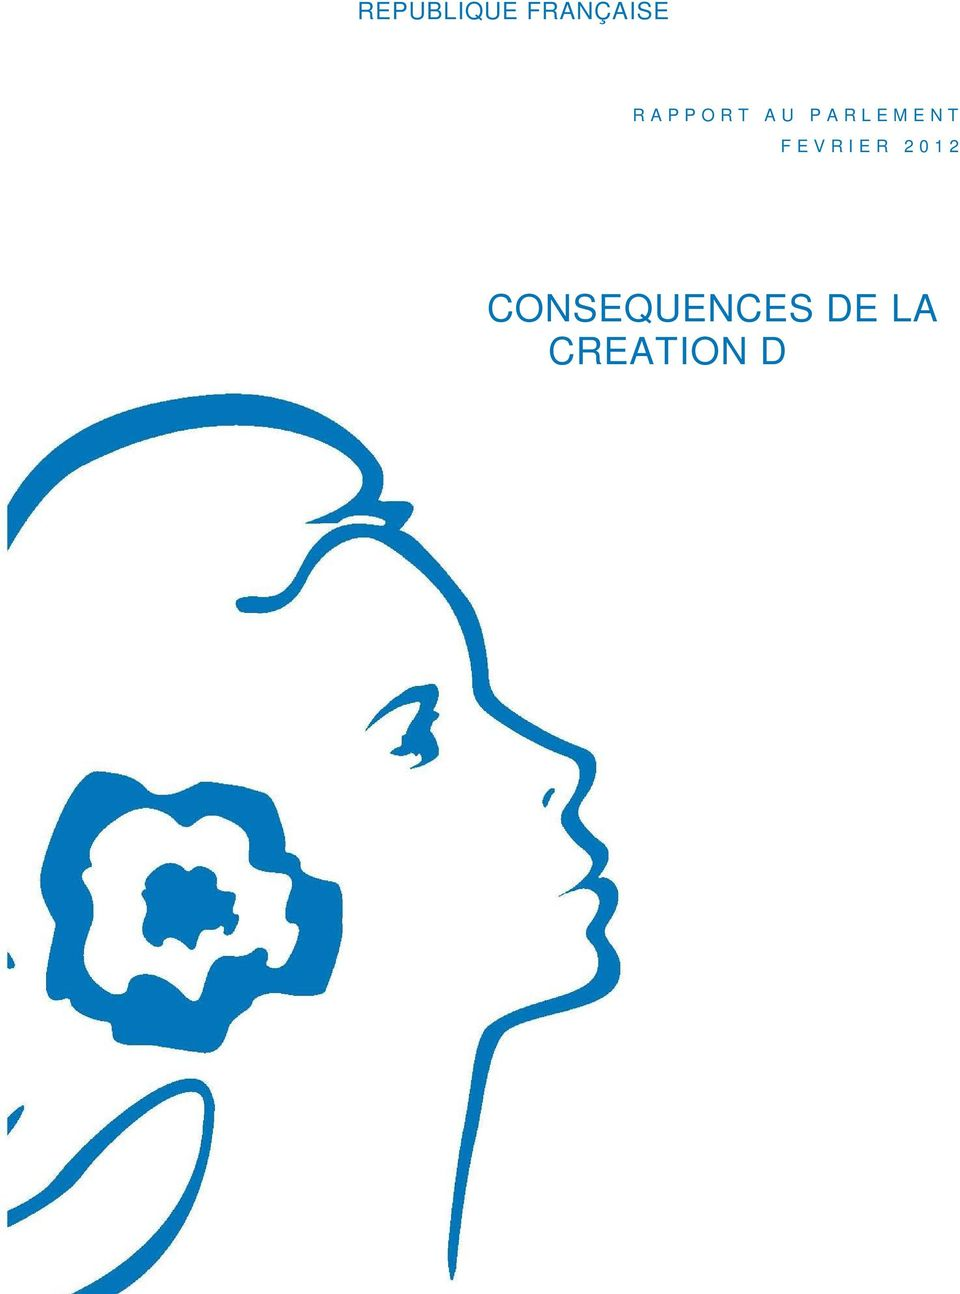 CONSEQUENCES DE LA CREATION D UNE